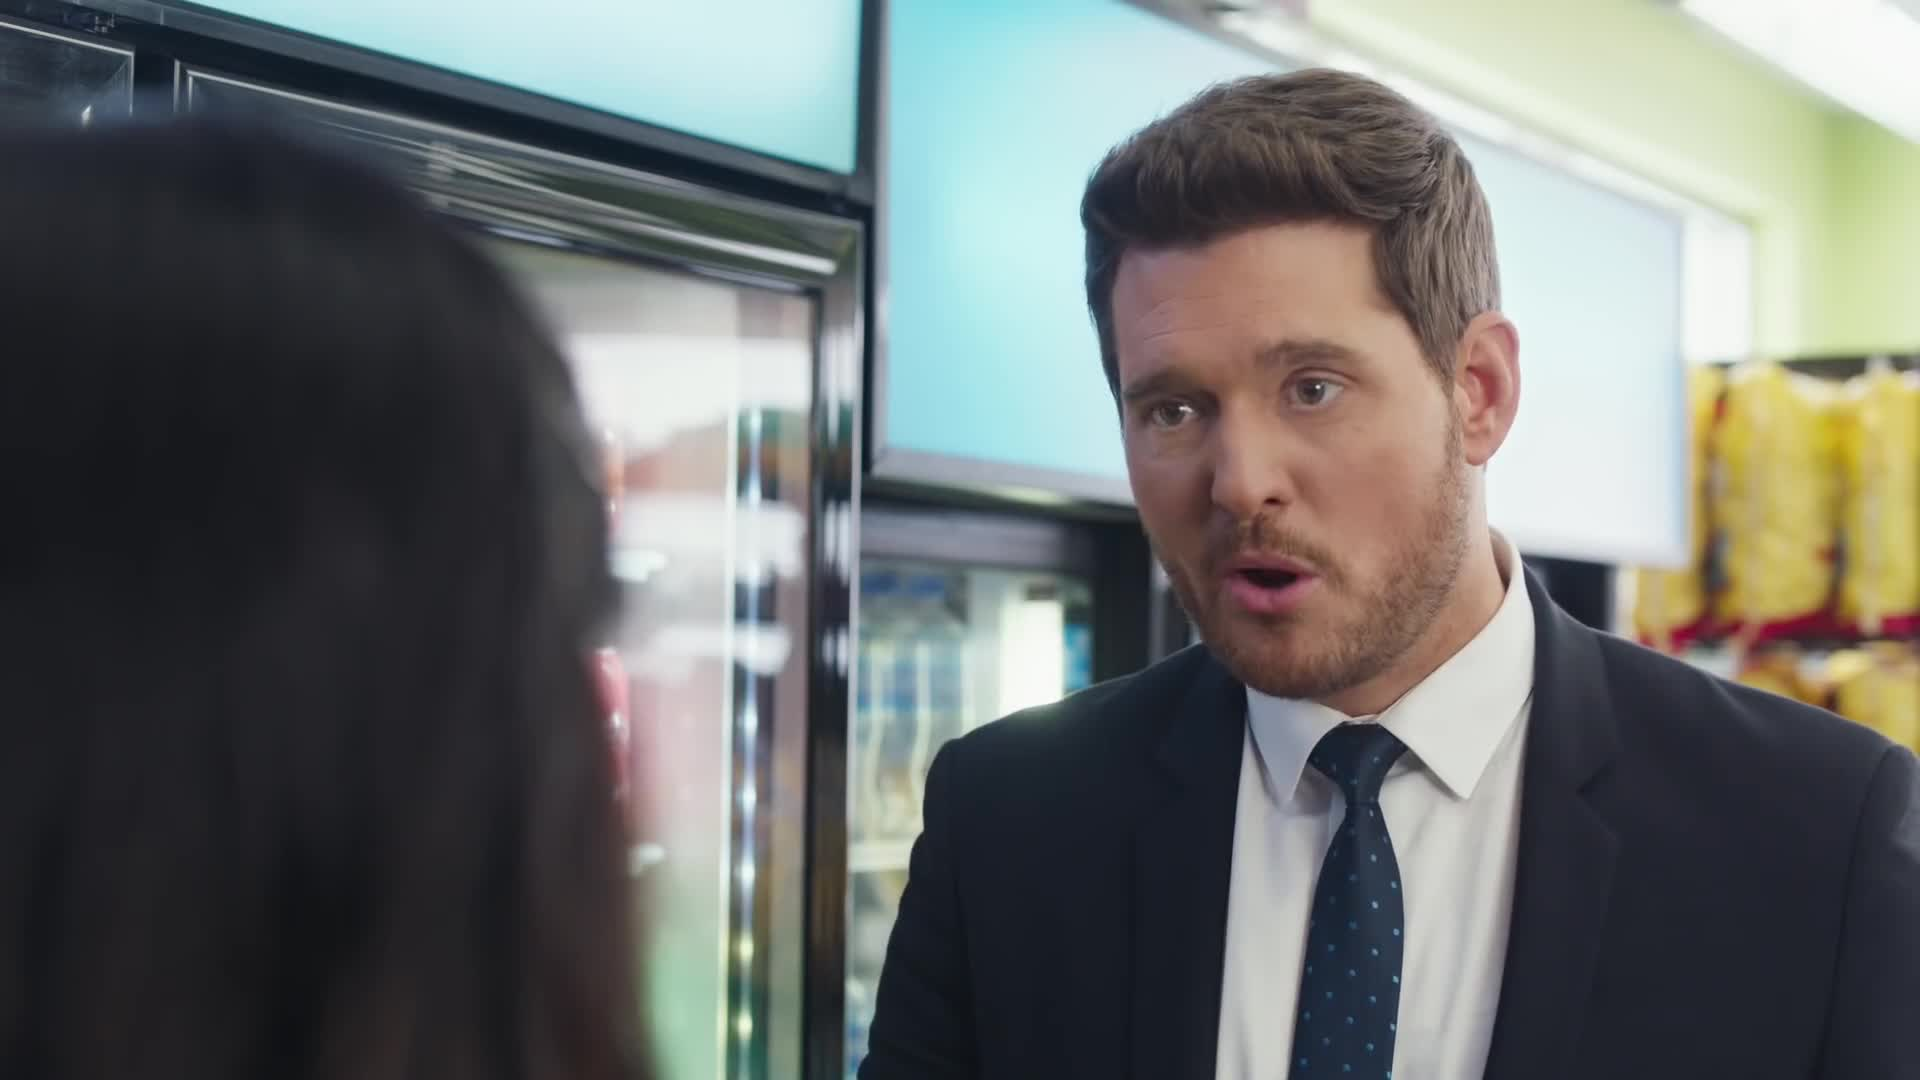 Michael Buble vs bubly - Super Bowl Commericial screen capture